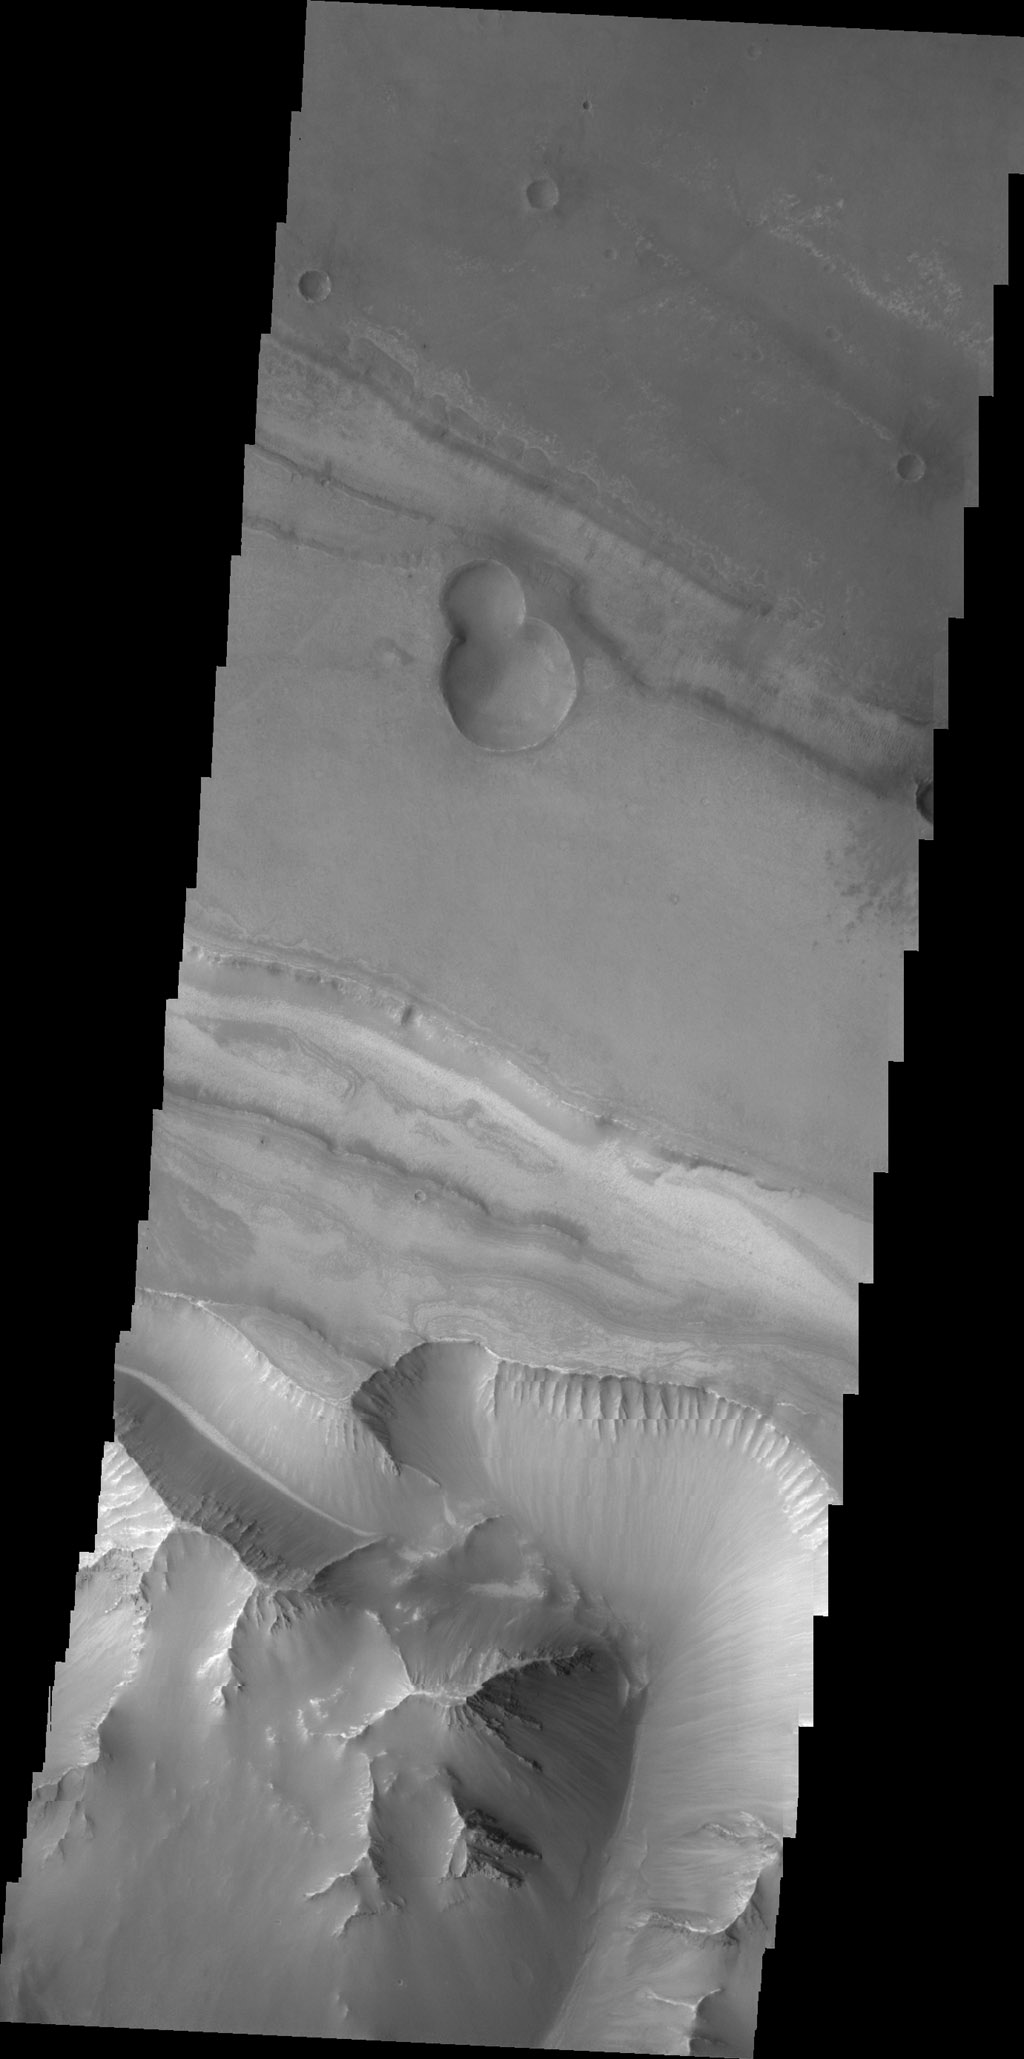 This image captured by NASA's 2001 Mars Odyssey spacecraft shows the region between Candor Chasma and Melas Chasma.